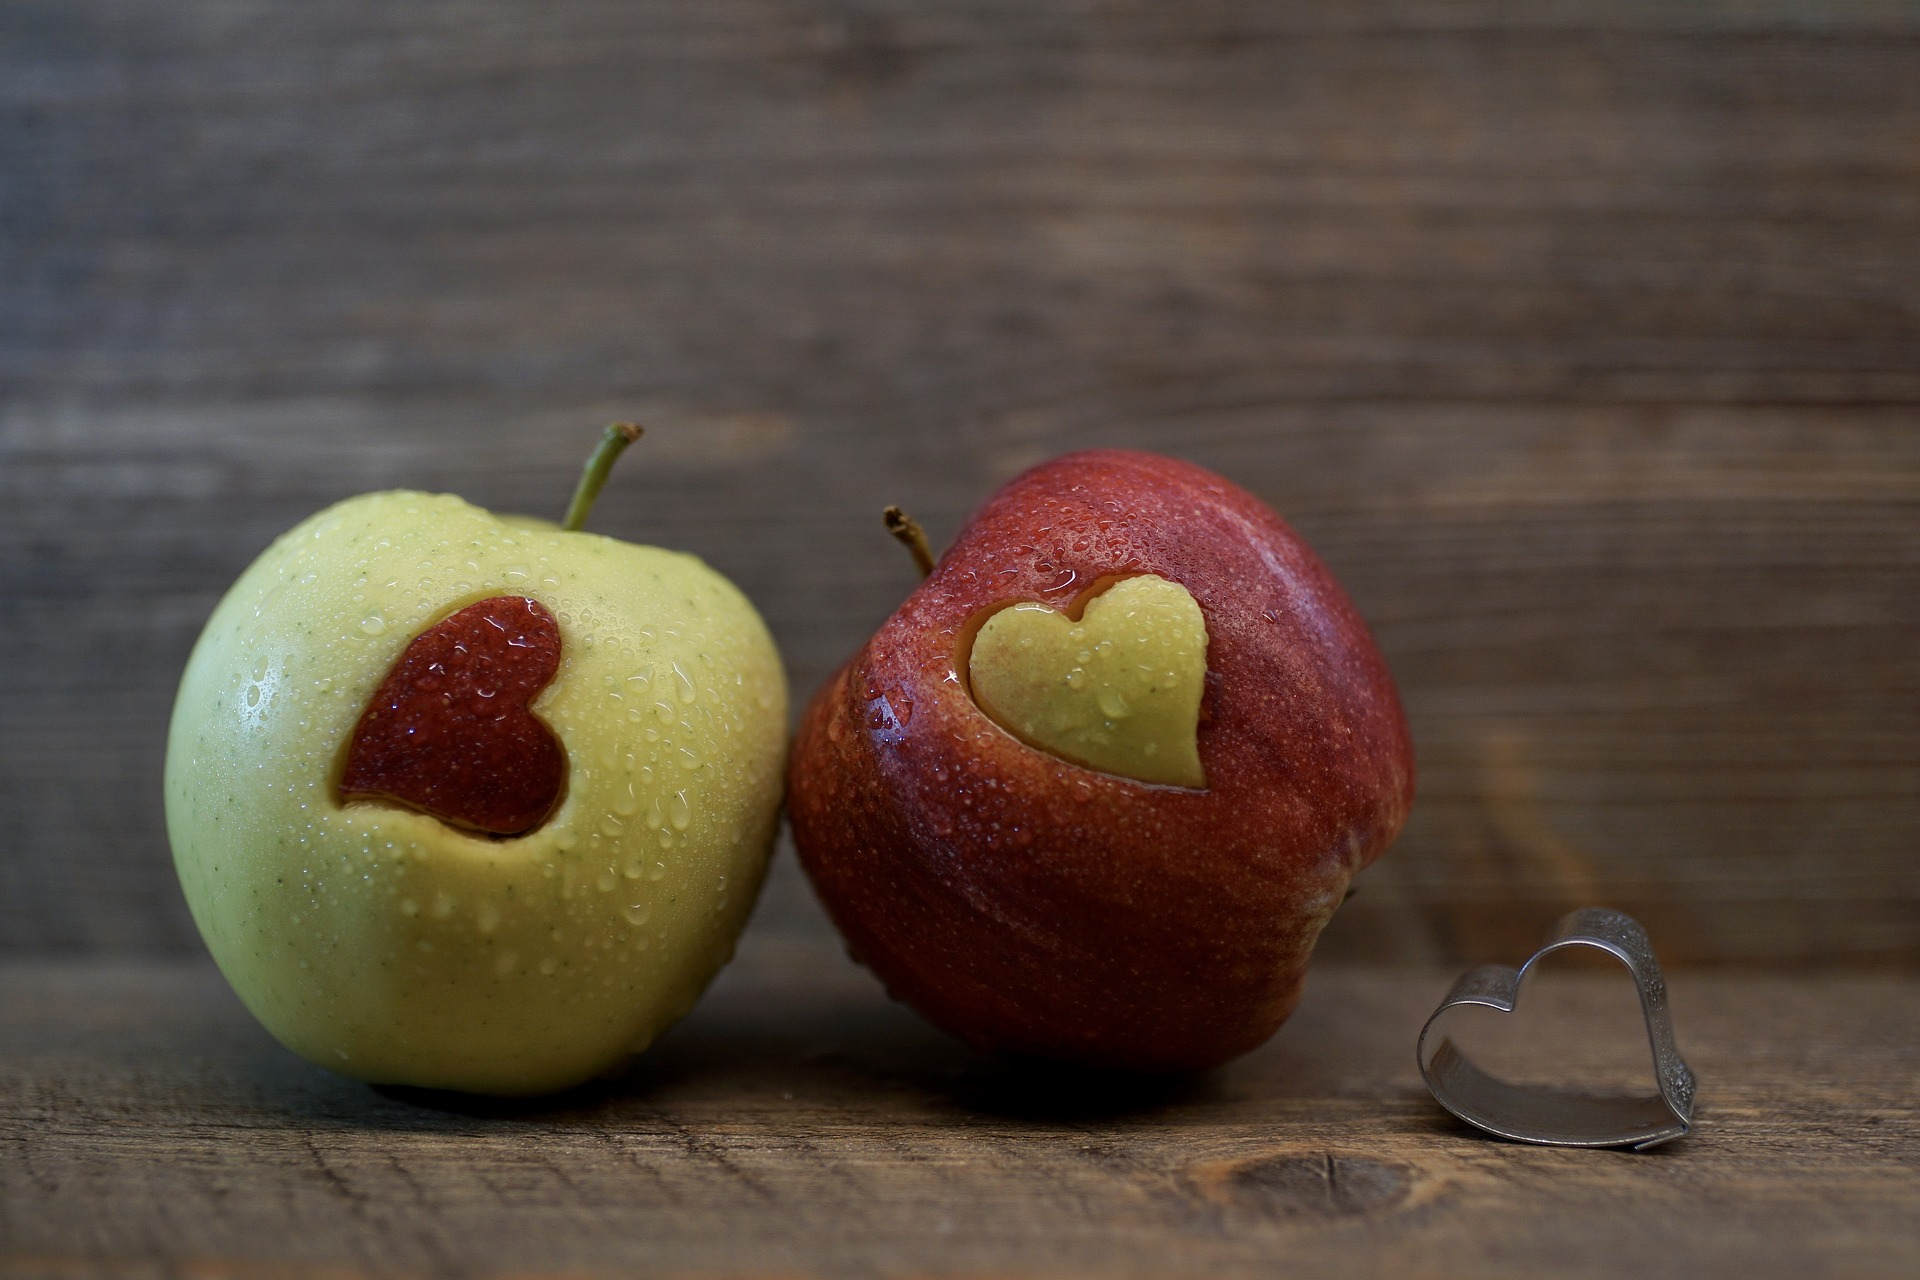 A red and green apple sitting on a wood table, each with a heart shape cut out of them